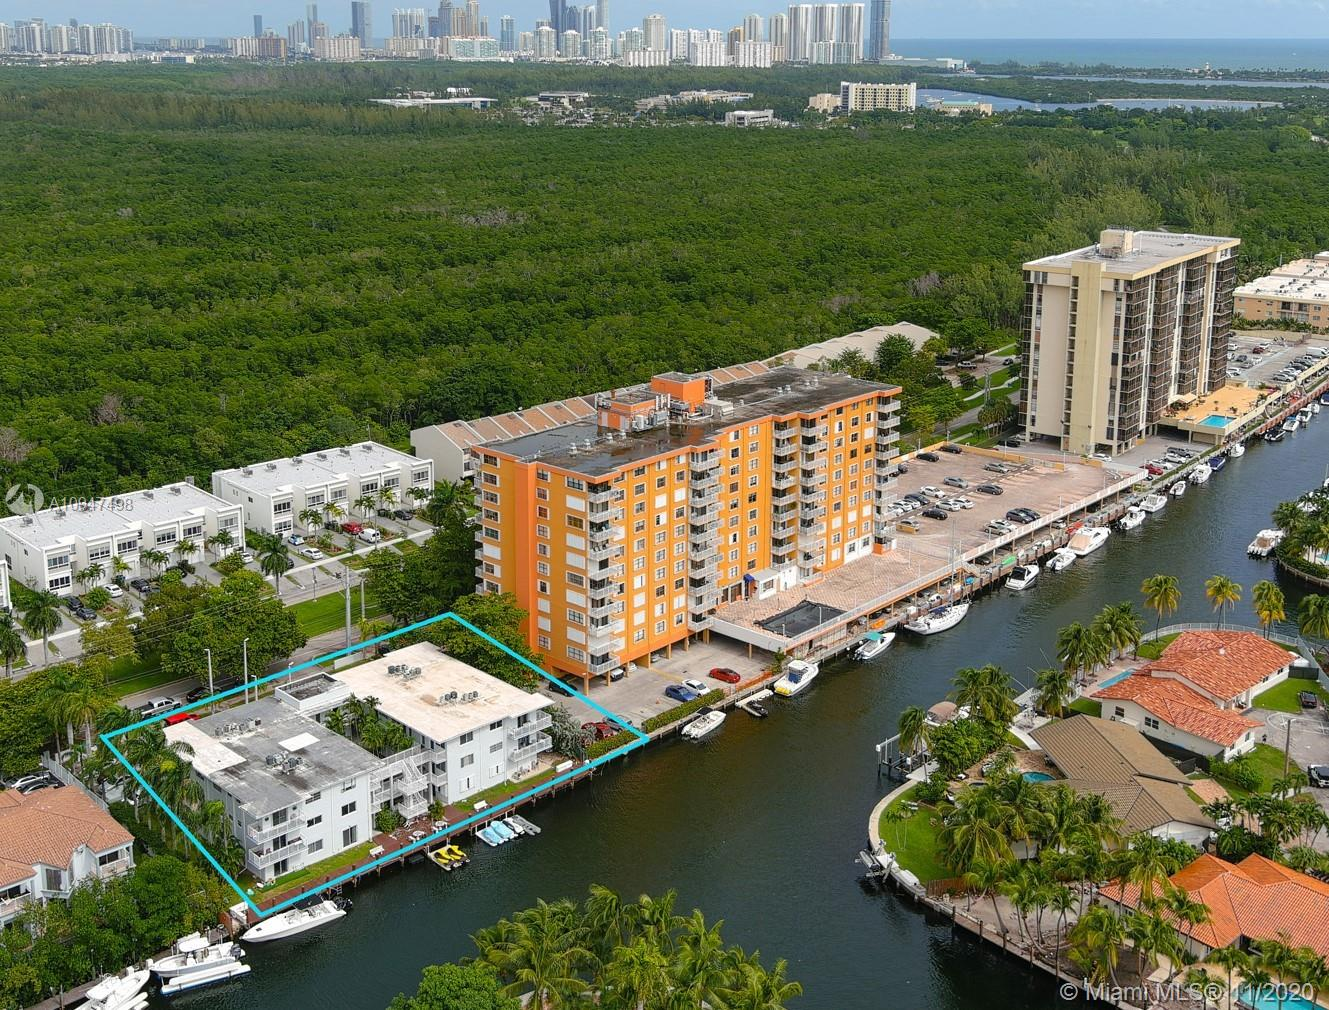 Beautiful remodeled waterfront condo, 750 sq ft and 33 ft dock included in this amazing price, with folios #06-2229-091-0250 for the condo and folio #06-2229-091-0320 for the dock.  Recently impact windows and doors were installed in this unit.  The open modern kitchen opens to the living space making everything flow. Master has a wraparaound balcony overlooking the canal and dock area. 